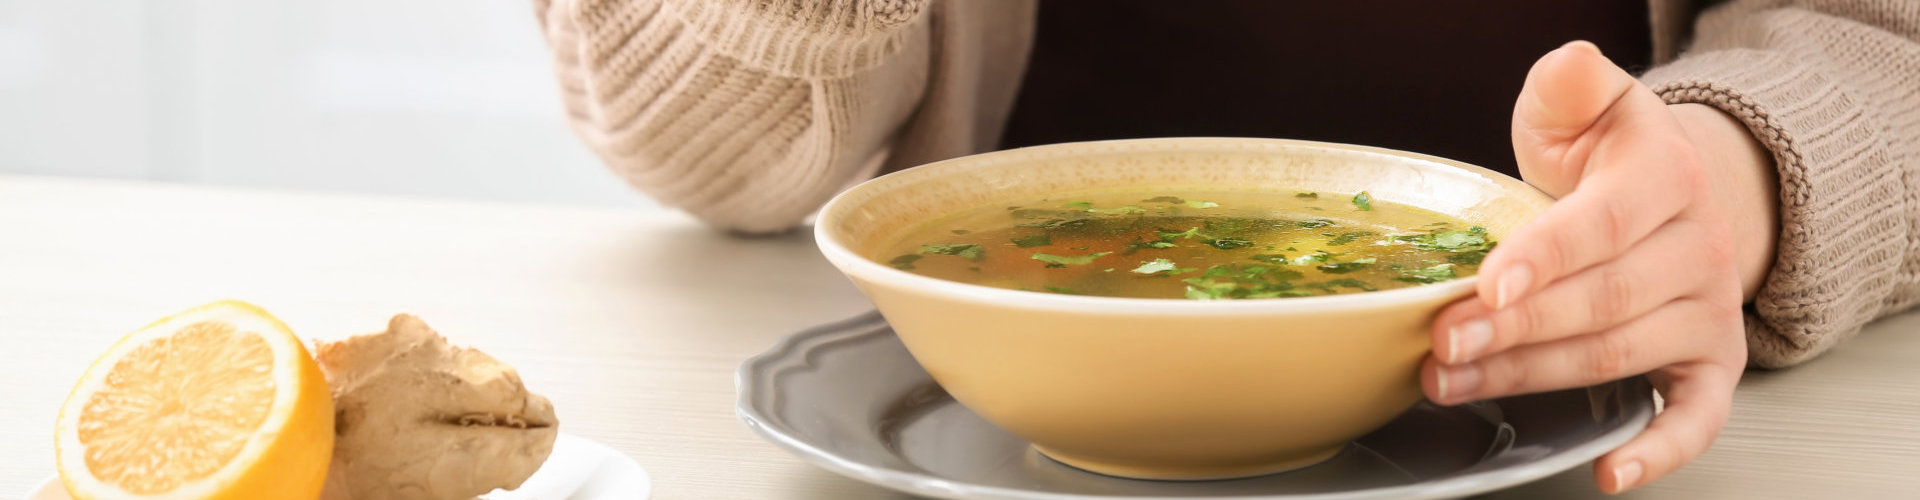 nutritious soup in a bowl